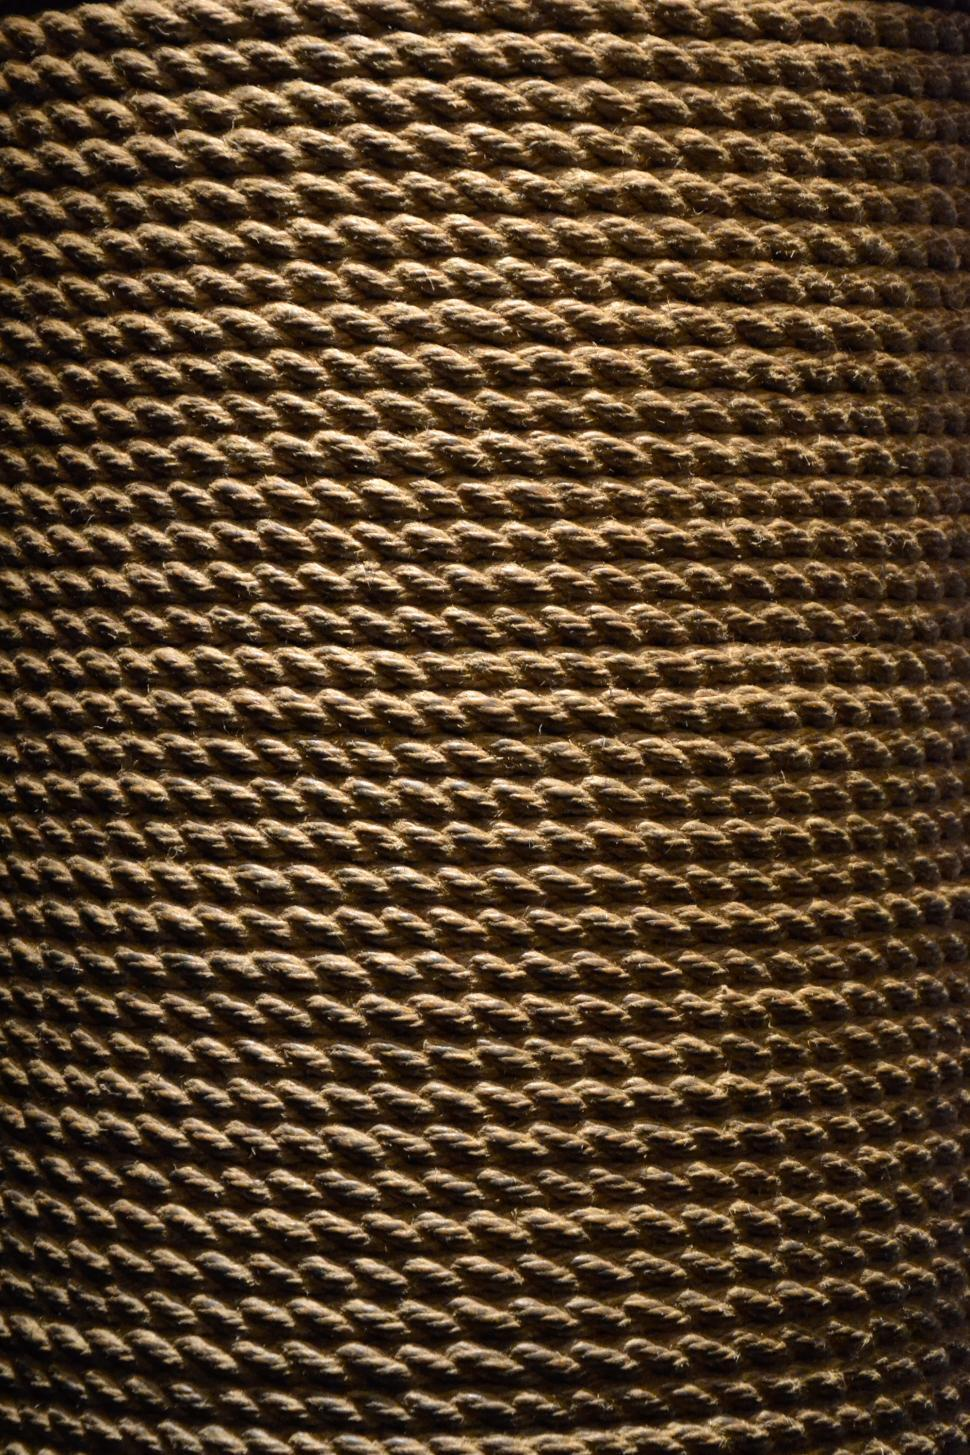 Download Free Stock HD Photo of Rope background Online